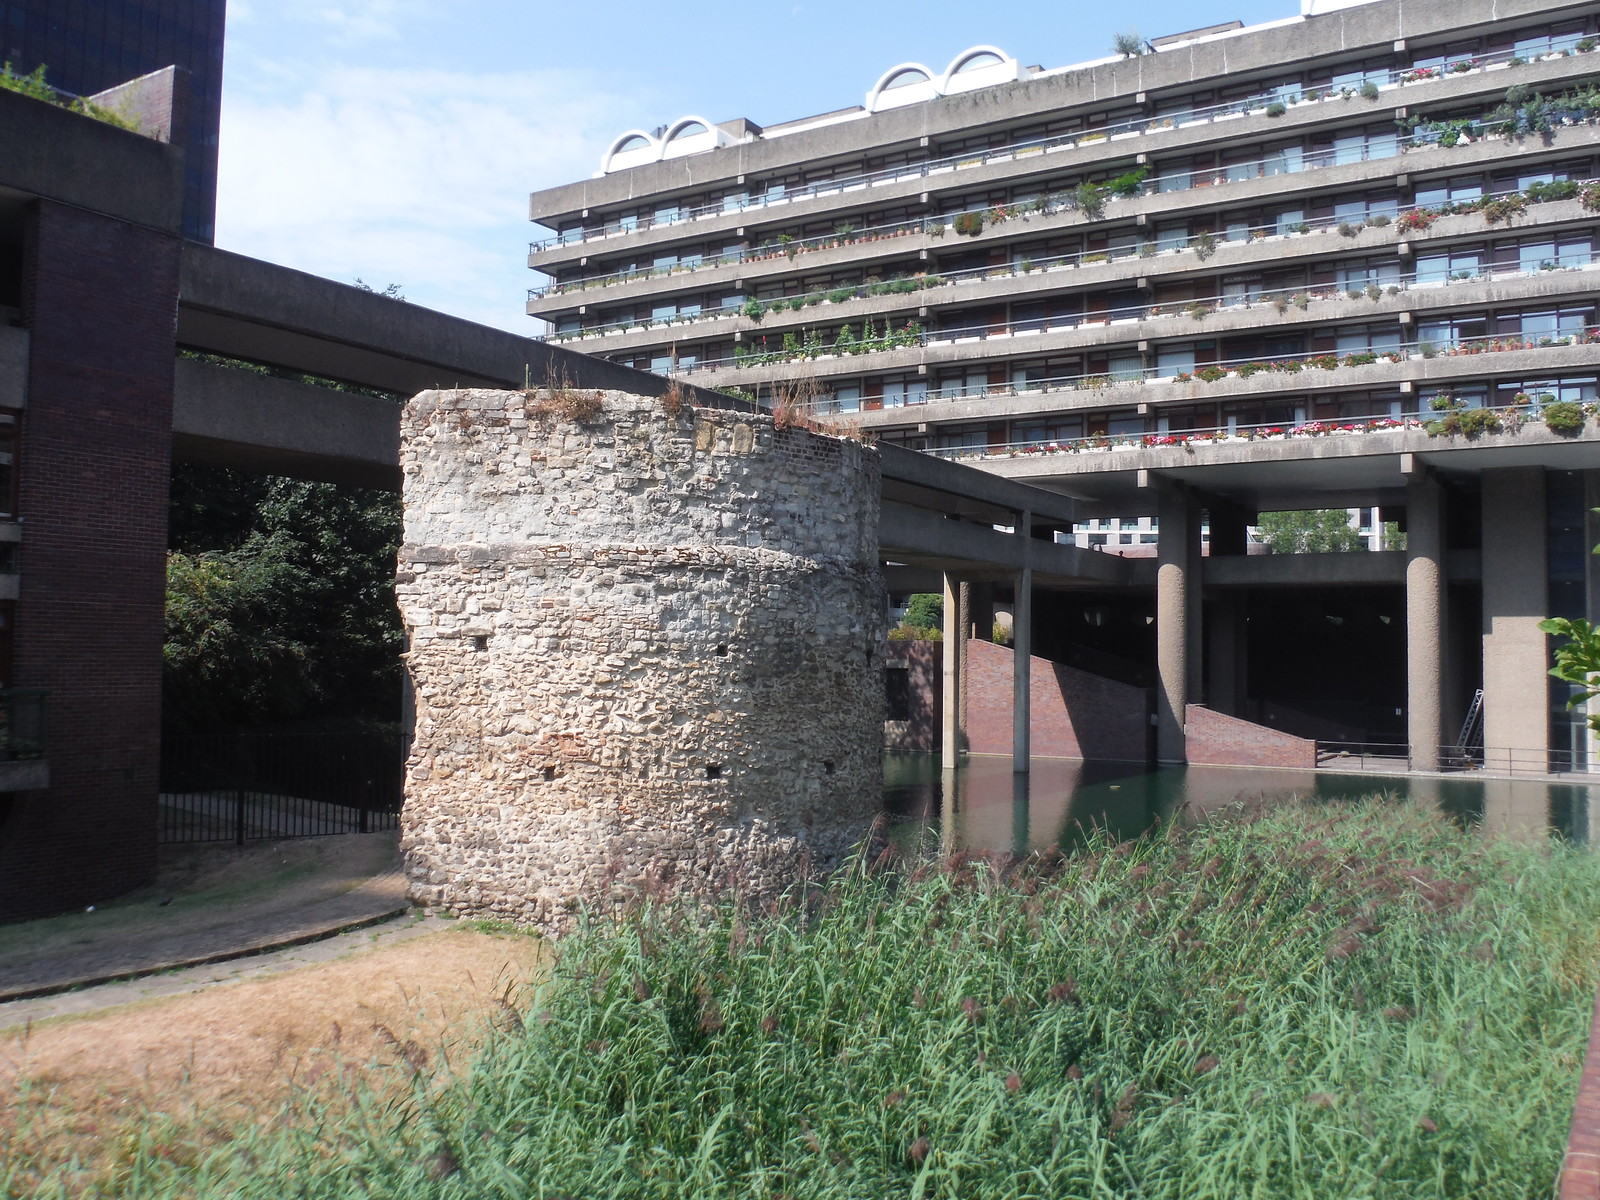 Bastion 12 of the London Wall, Barbican Estate SWC Short Walk 47 - The London Wall